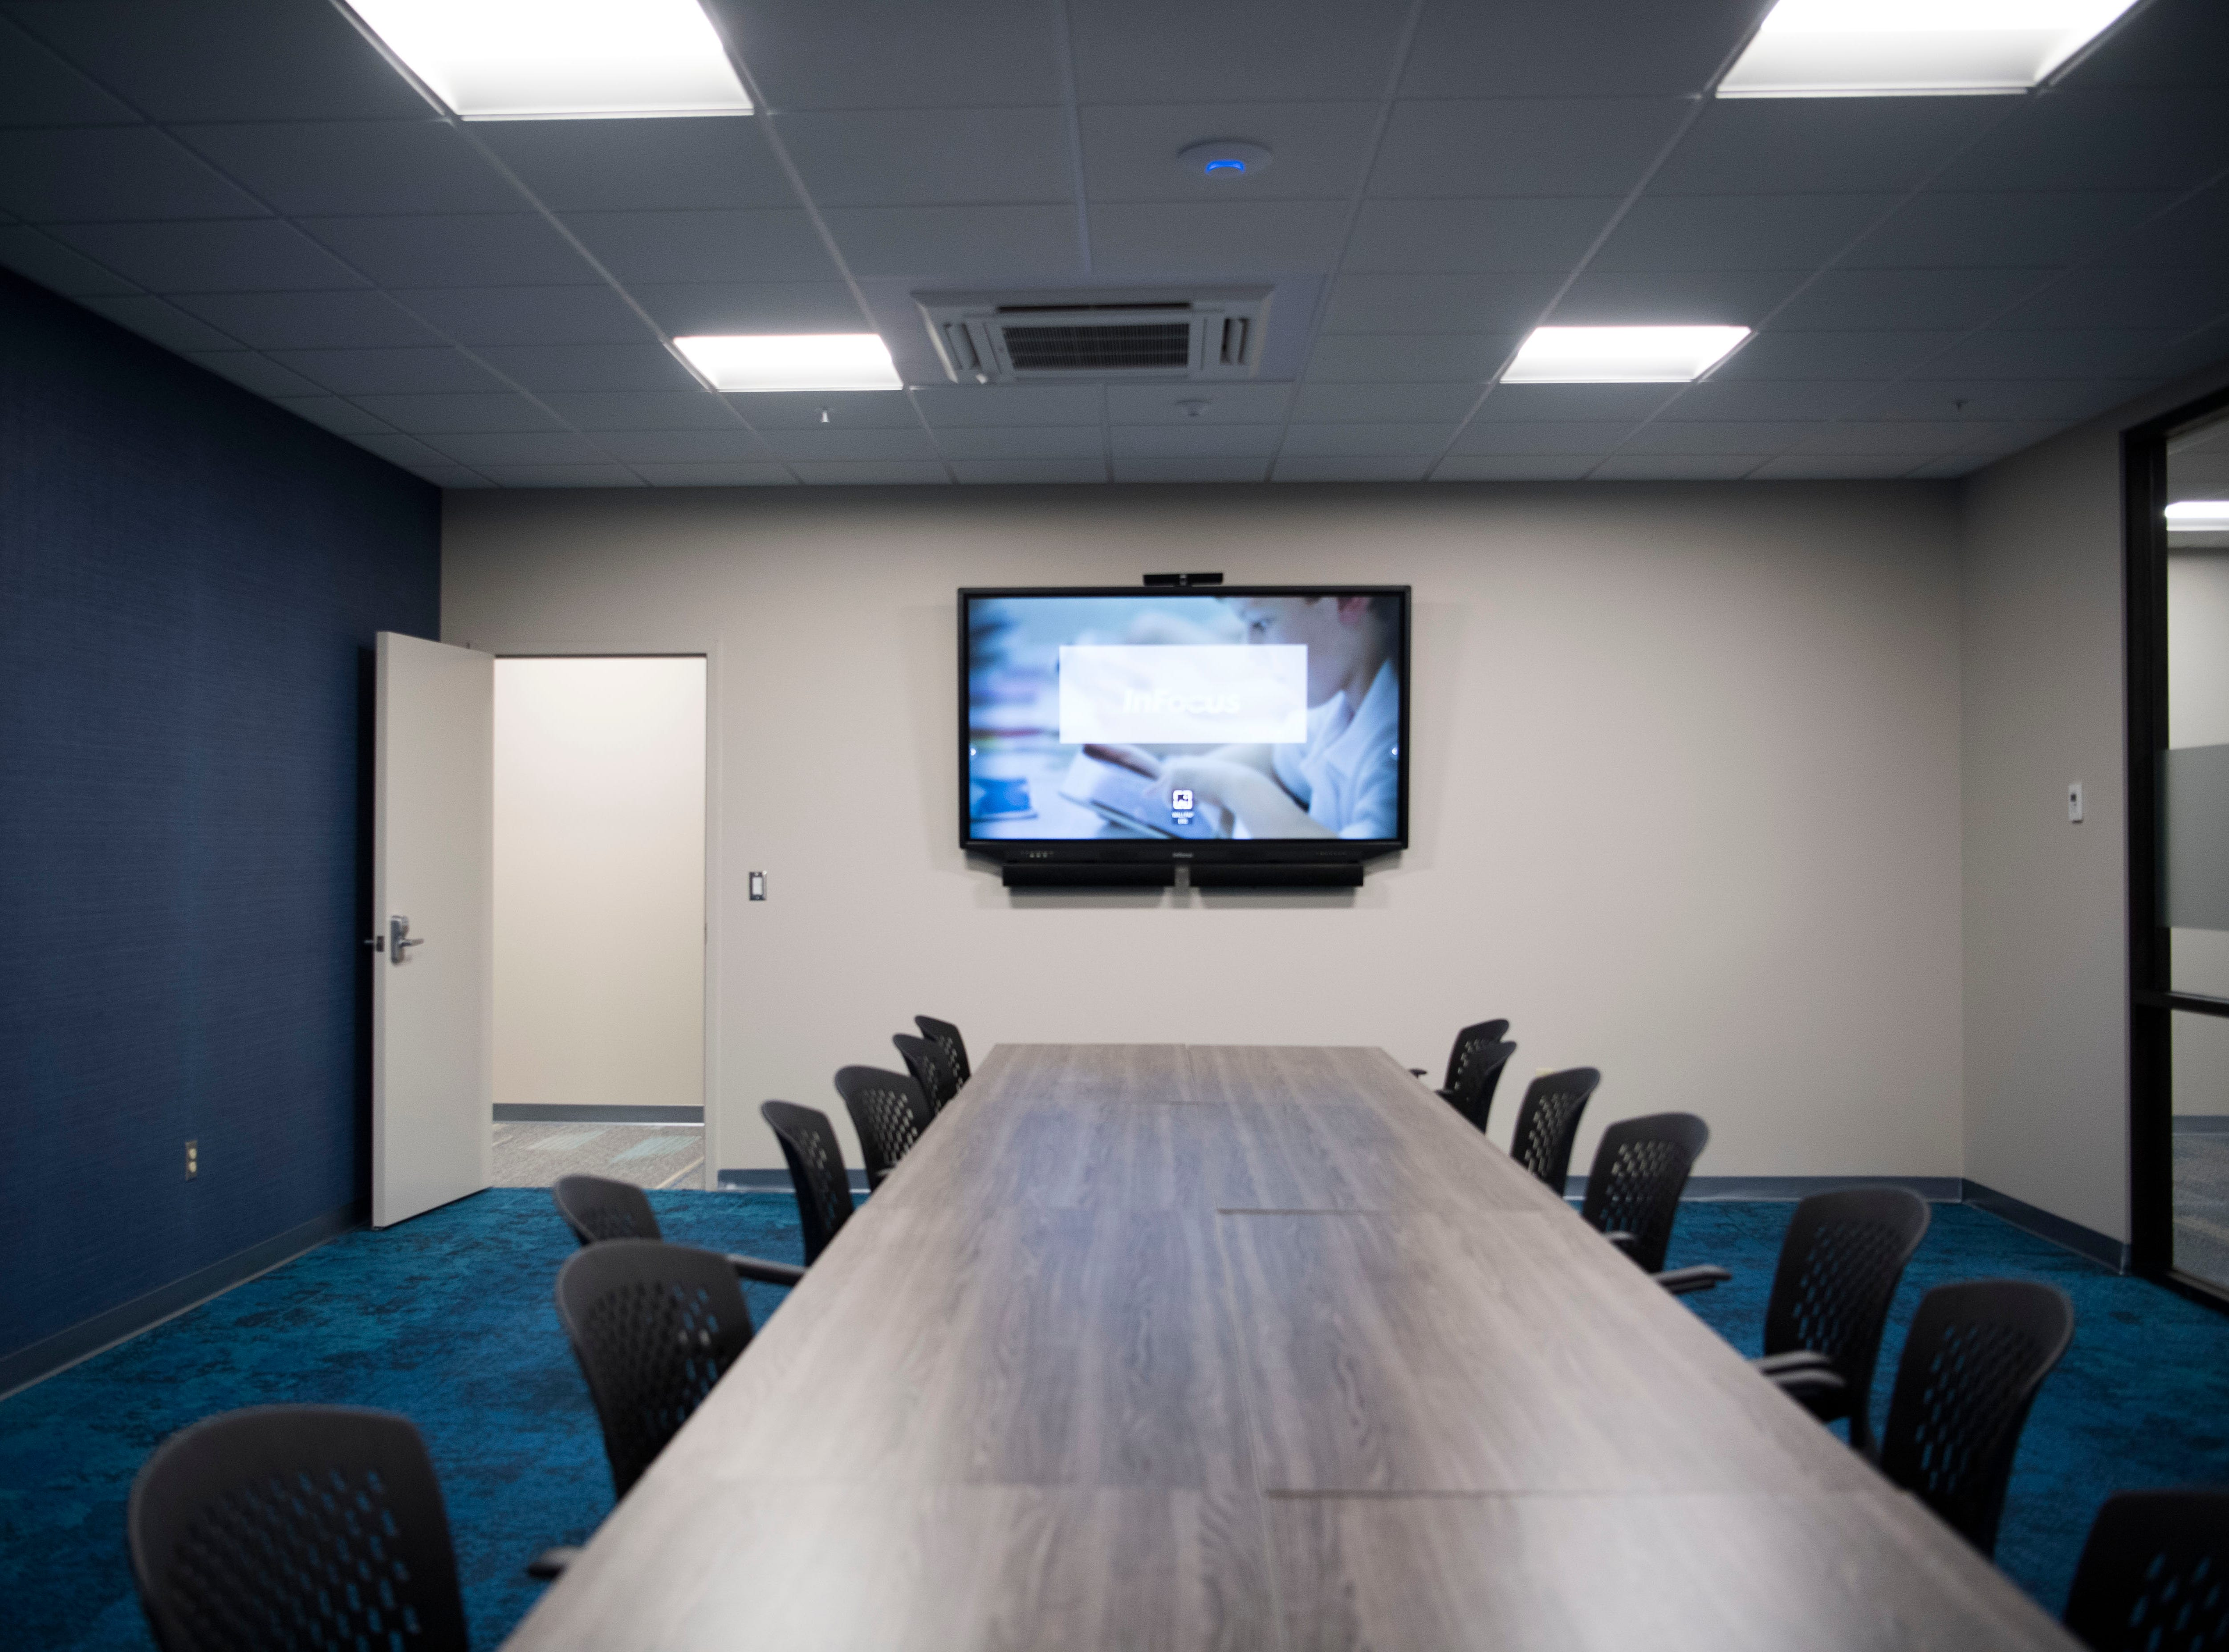 A conference room in Ts117, a new coworking space in Oak Ridge run by brothers Rick and Ryan Chinn, Tuesday, Feb. 19, 2019.